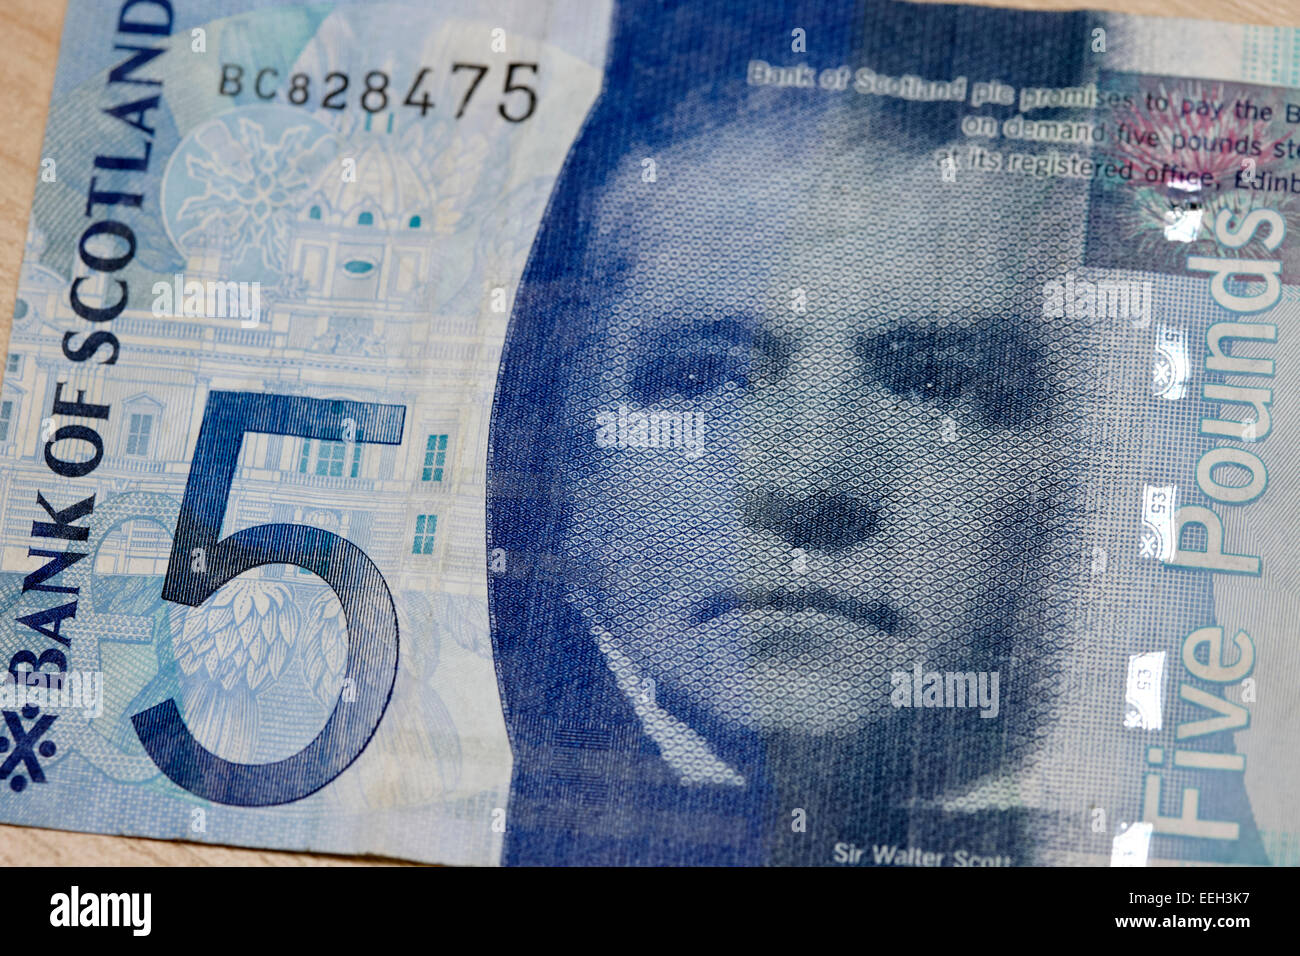 sir walter scott on the polymer bank of scotland five pounds banknote - Stock Image